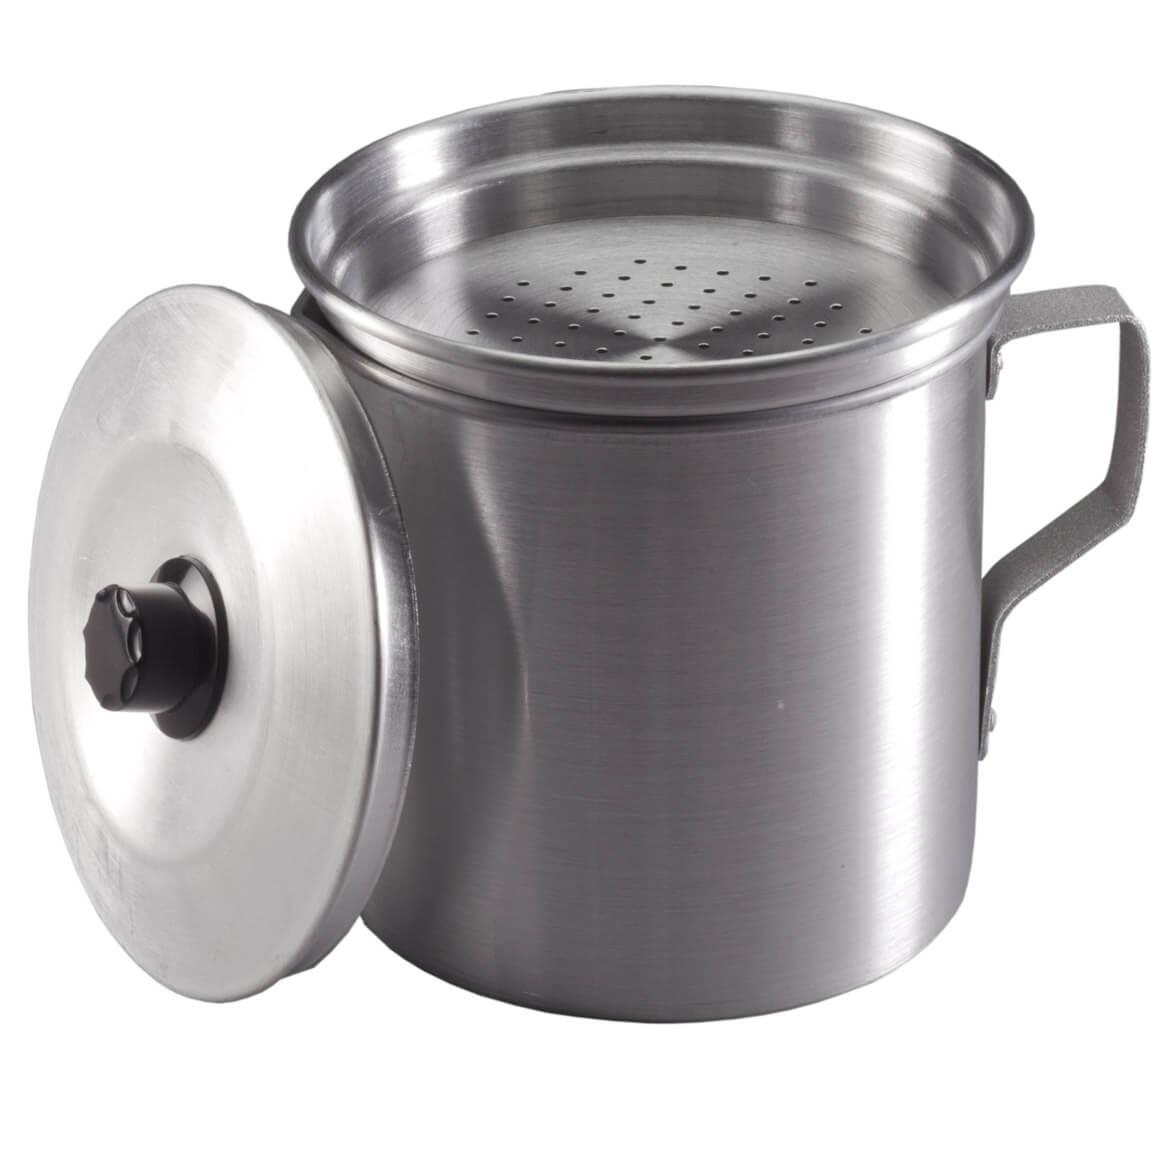 Oil strainer cooking pot